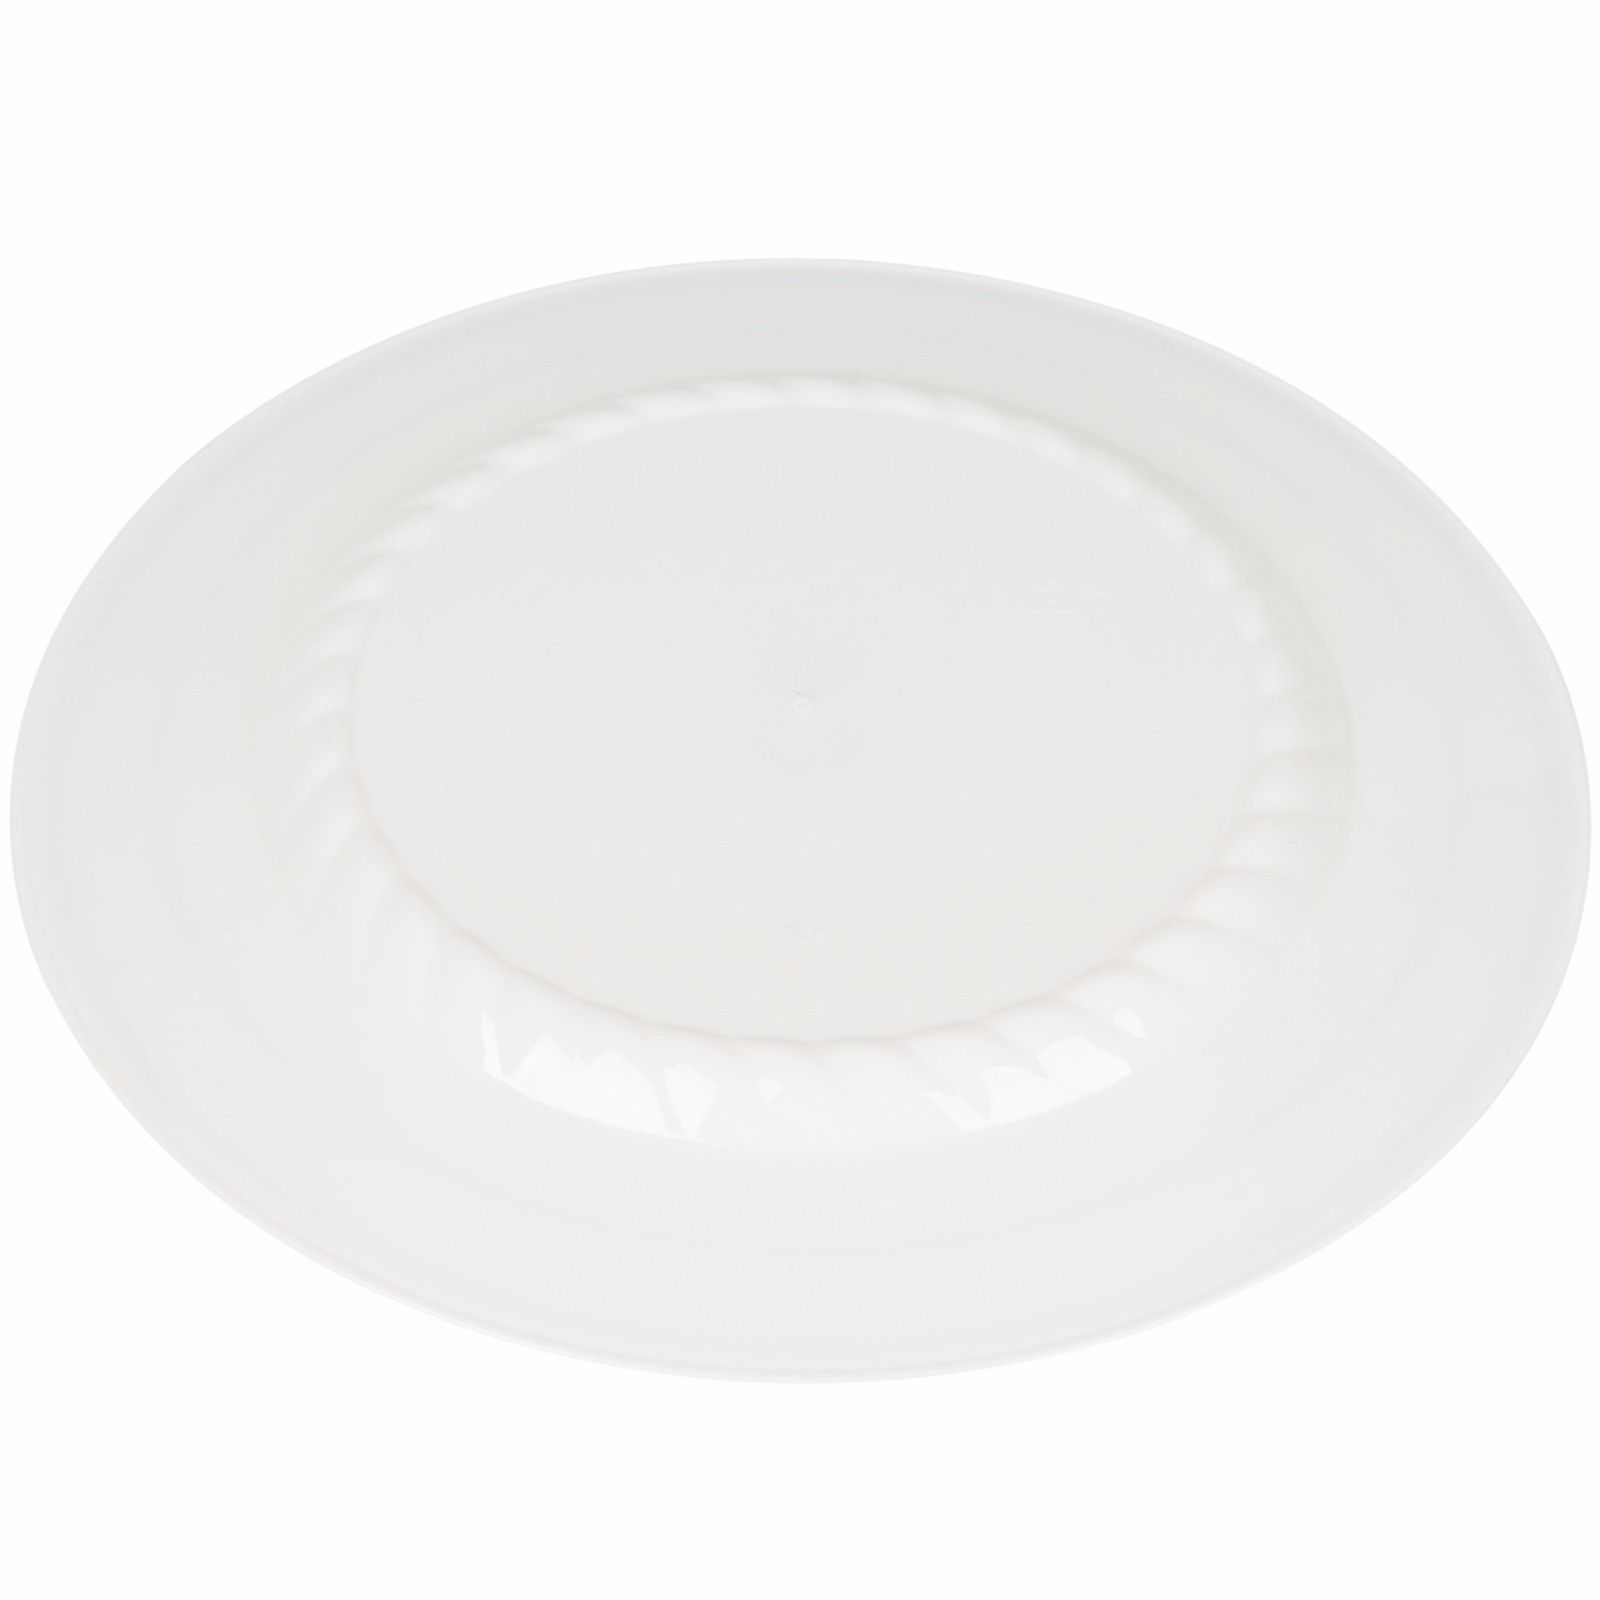 "7"" Desert White Plates Premium Heavy Weight Plastic with silver trim(1 case)"